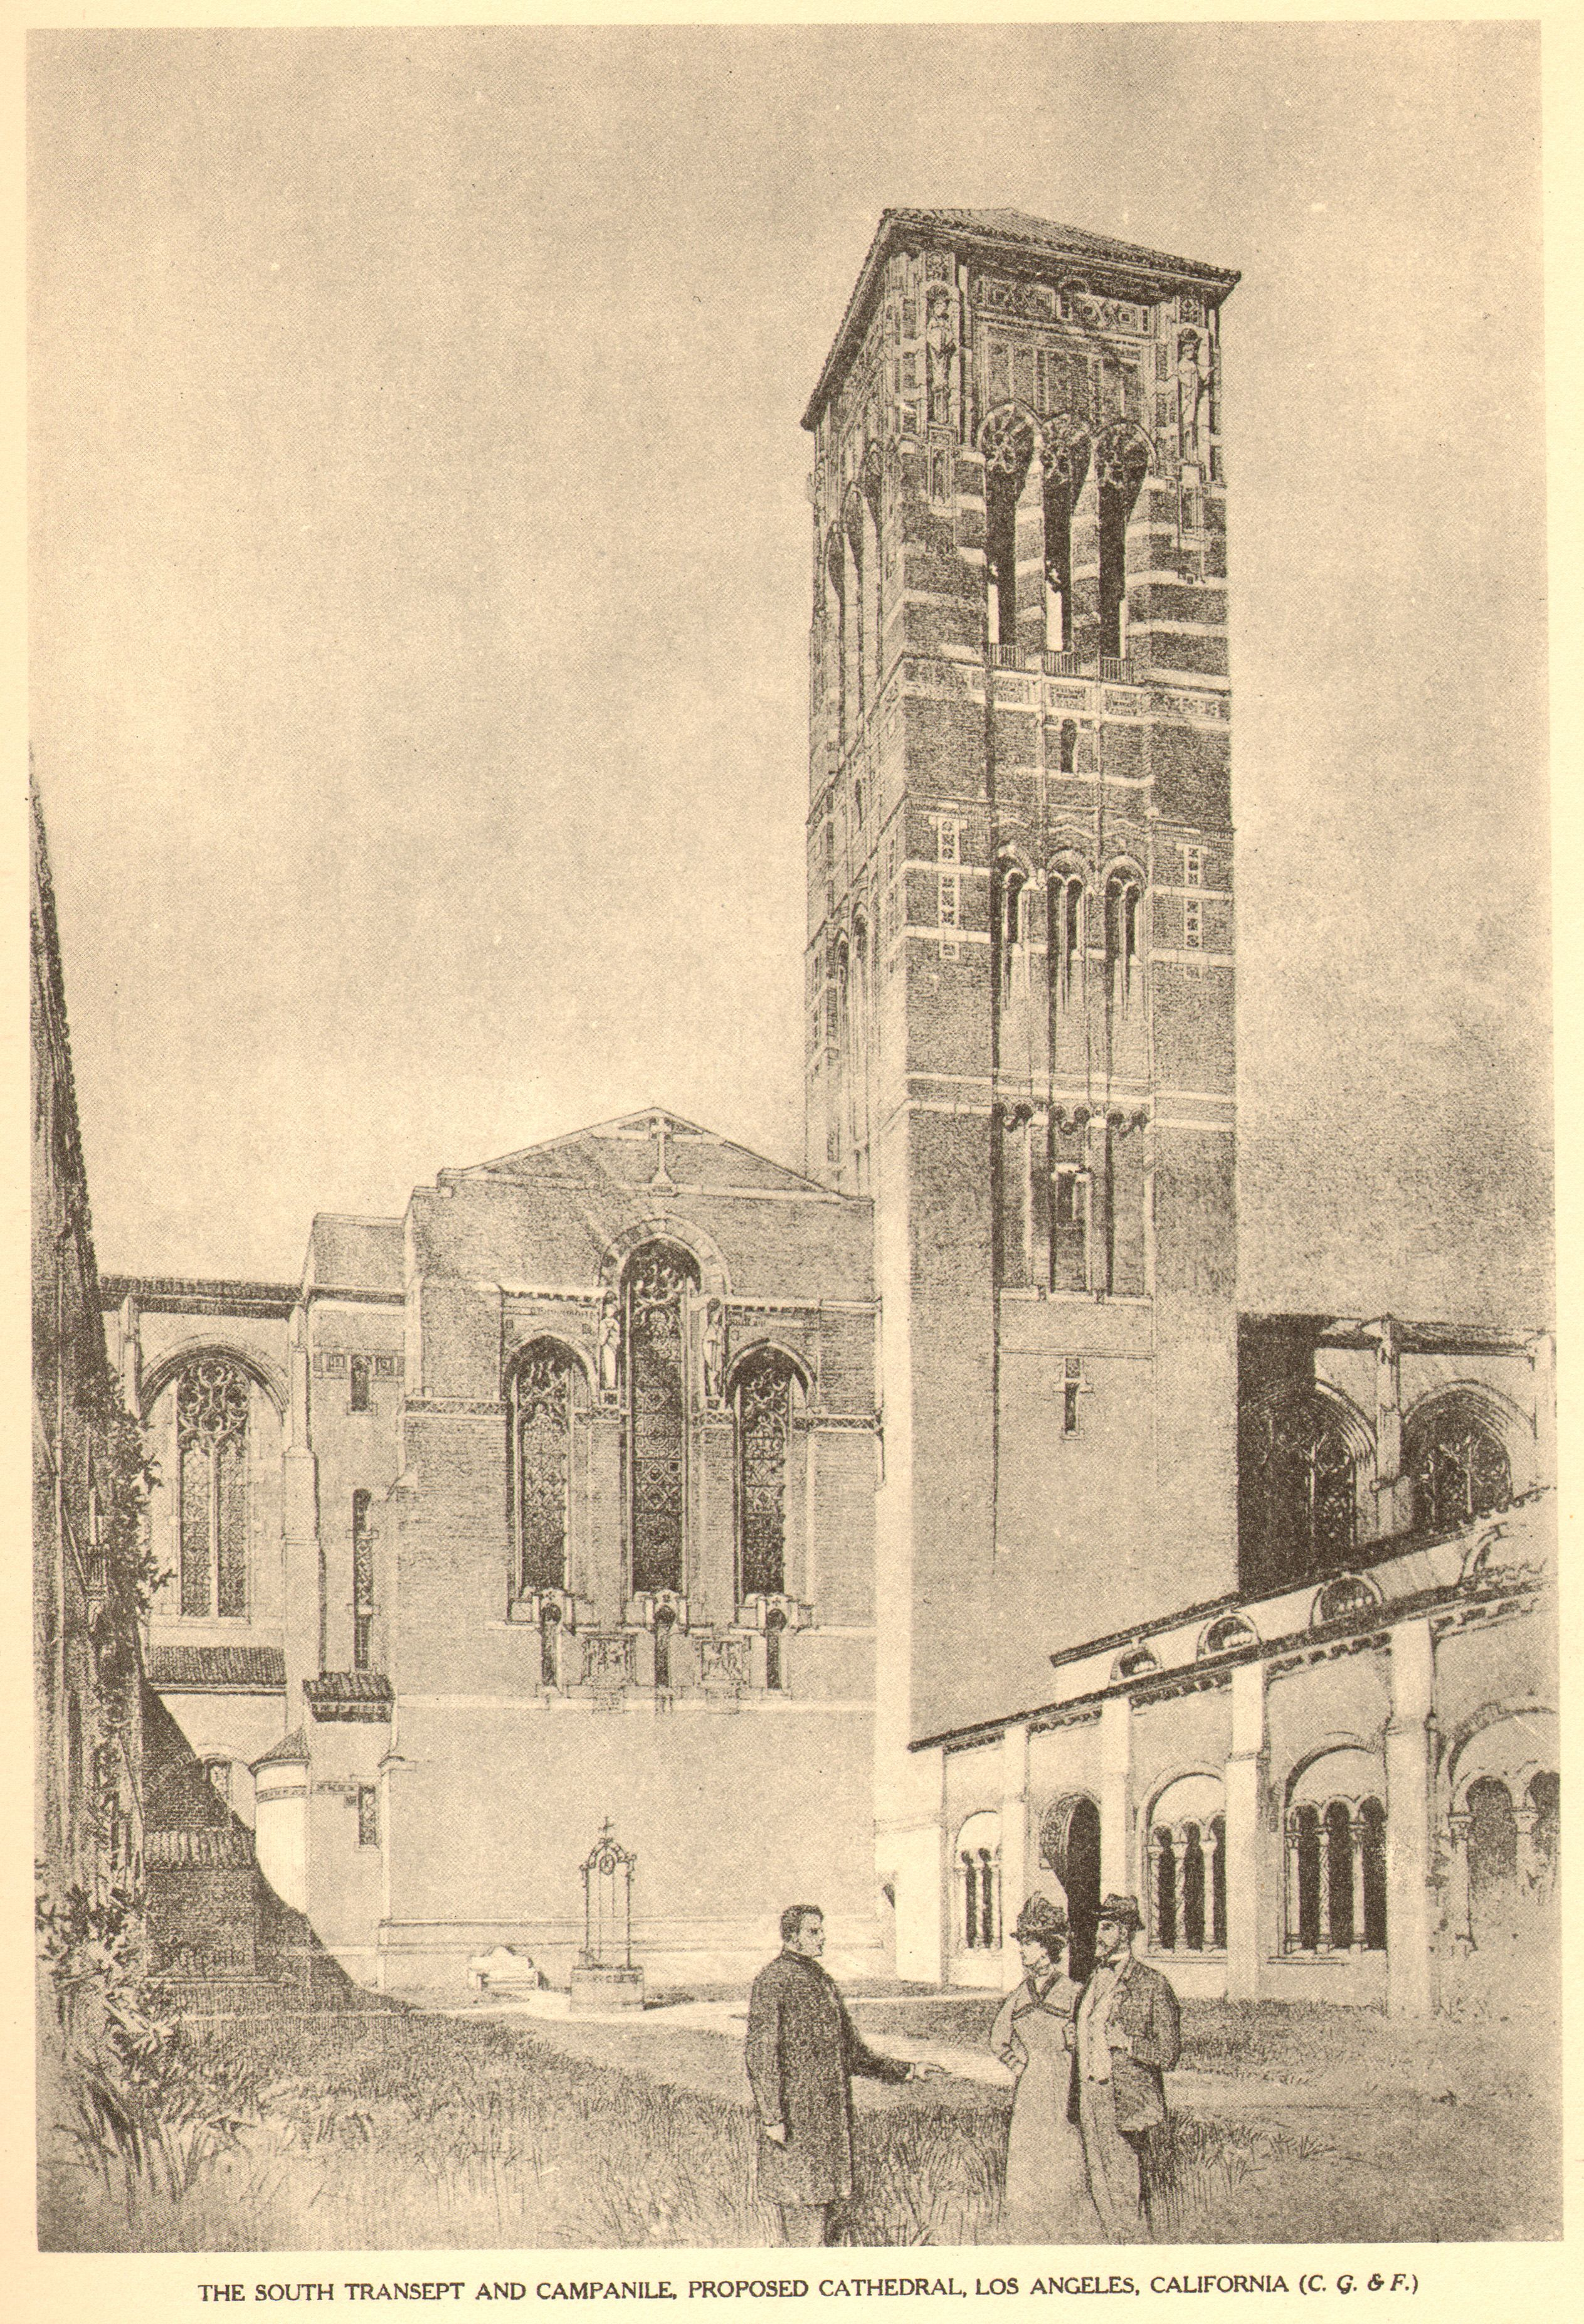 Bertram Grosvenor Goodhue, Architect (1869-1924) Pencil Rendering. South Transept and Campanille, Los Angeles.